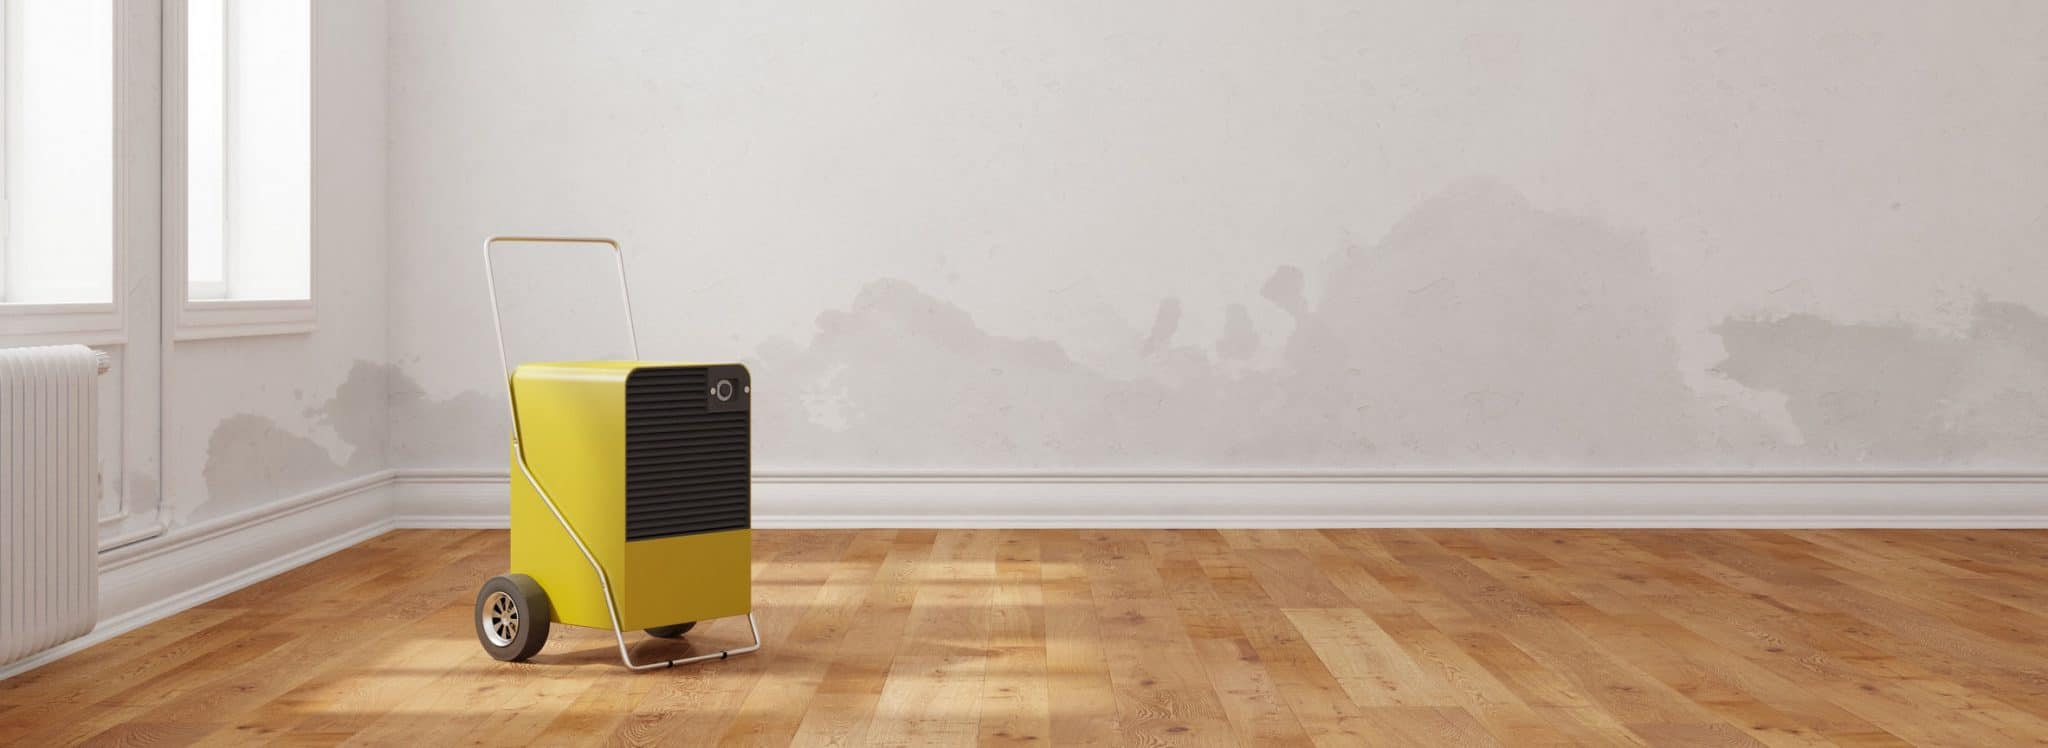 Professional dehumidifier in room after water damage